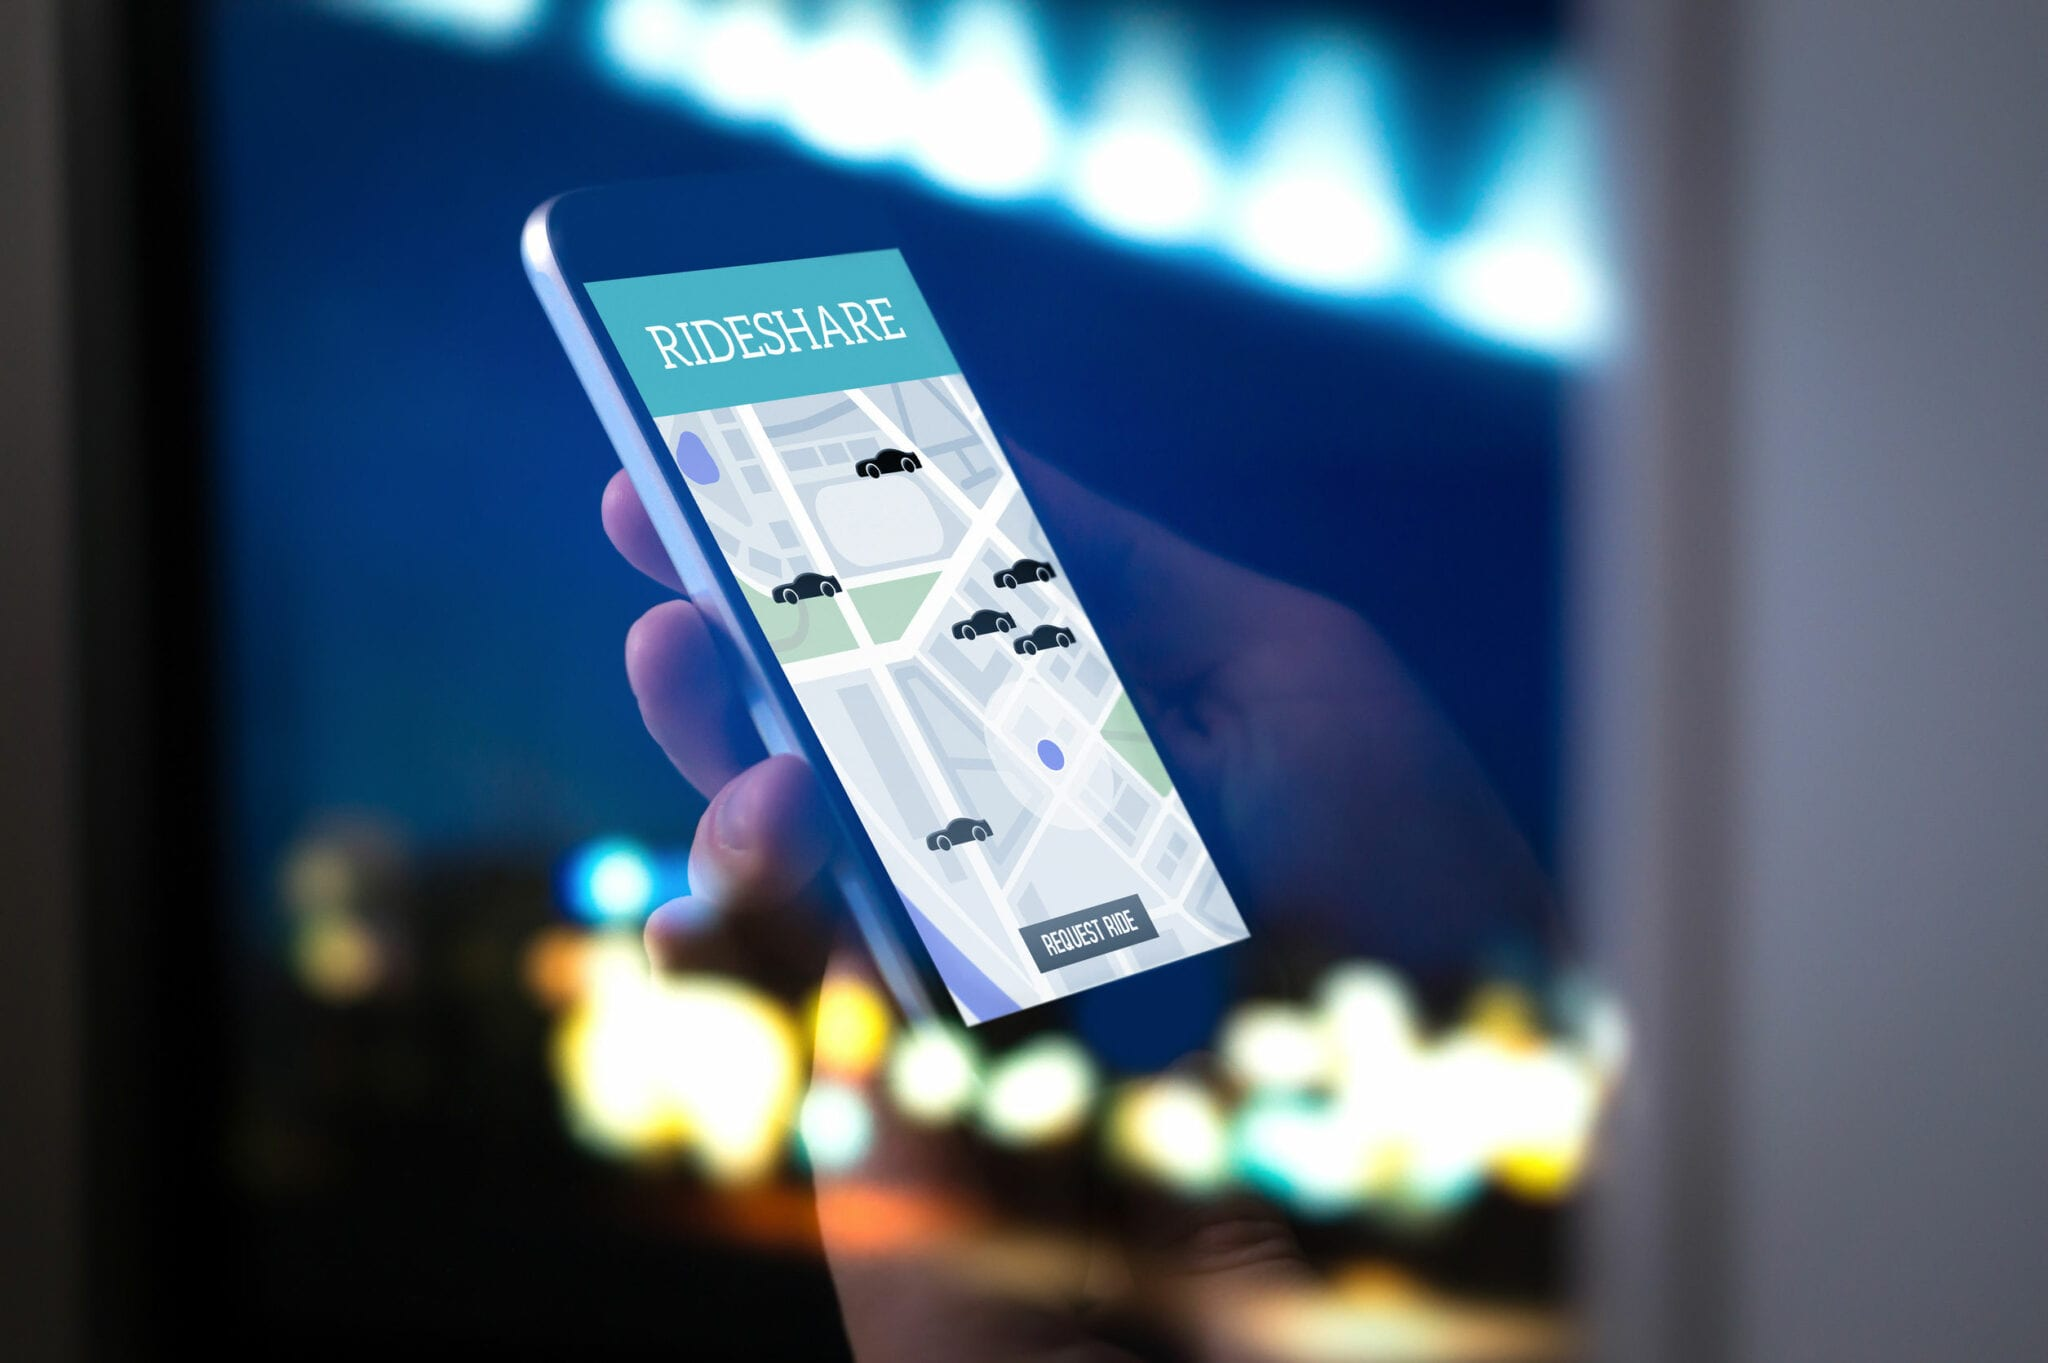 Post-Pandemic Rideshare May Look Different In Texas